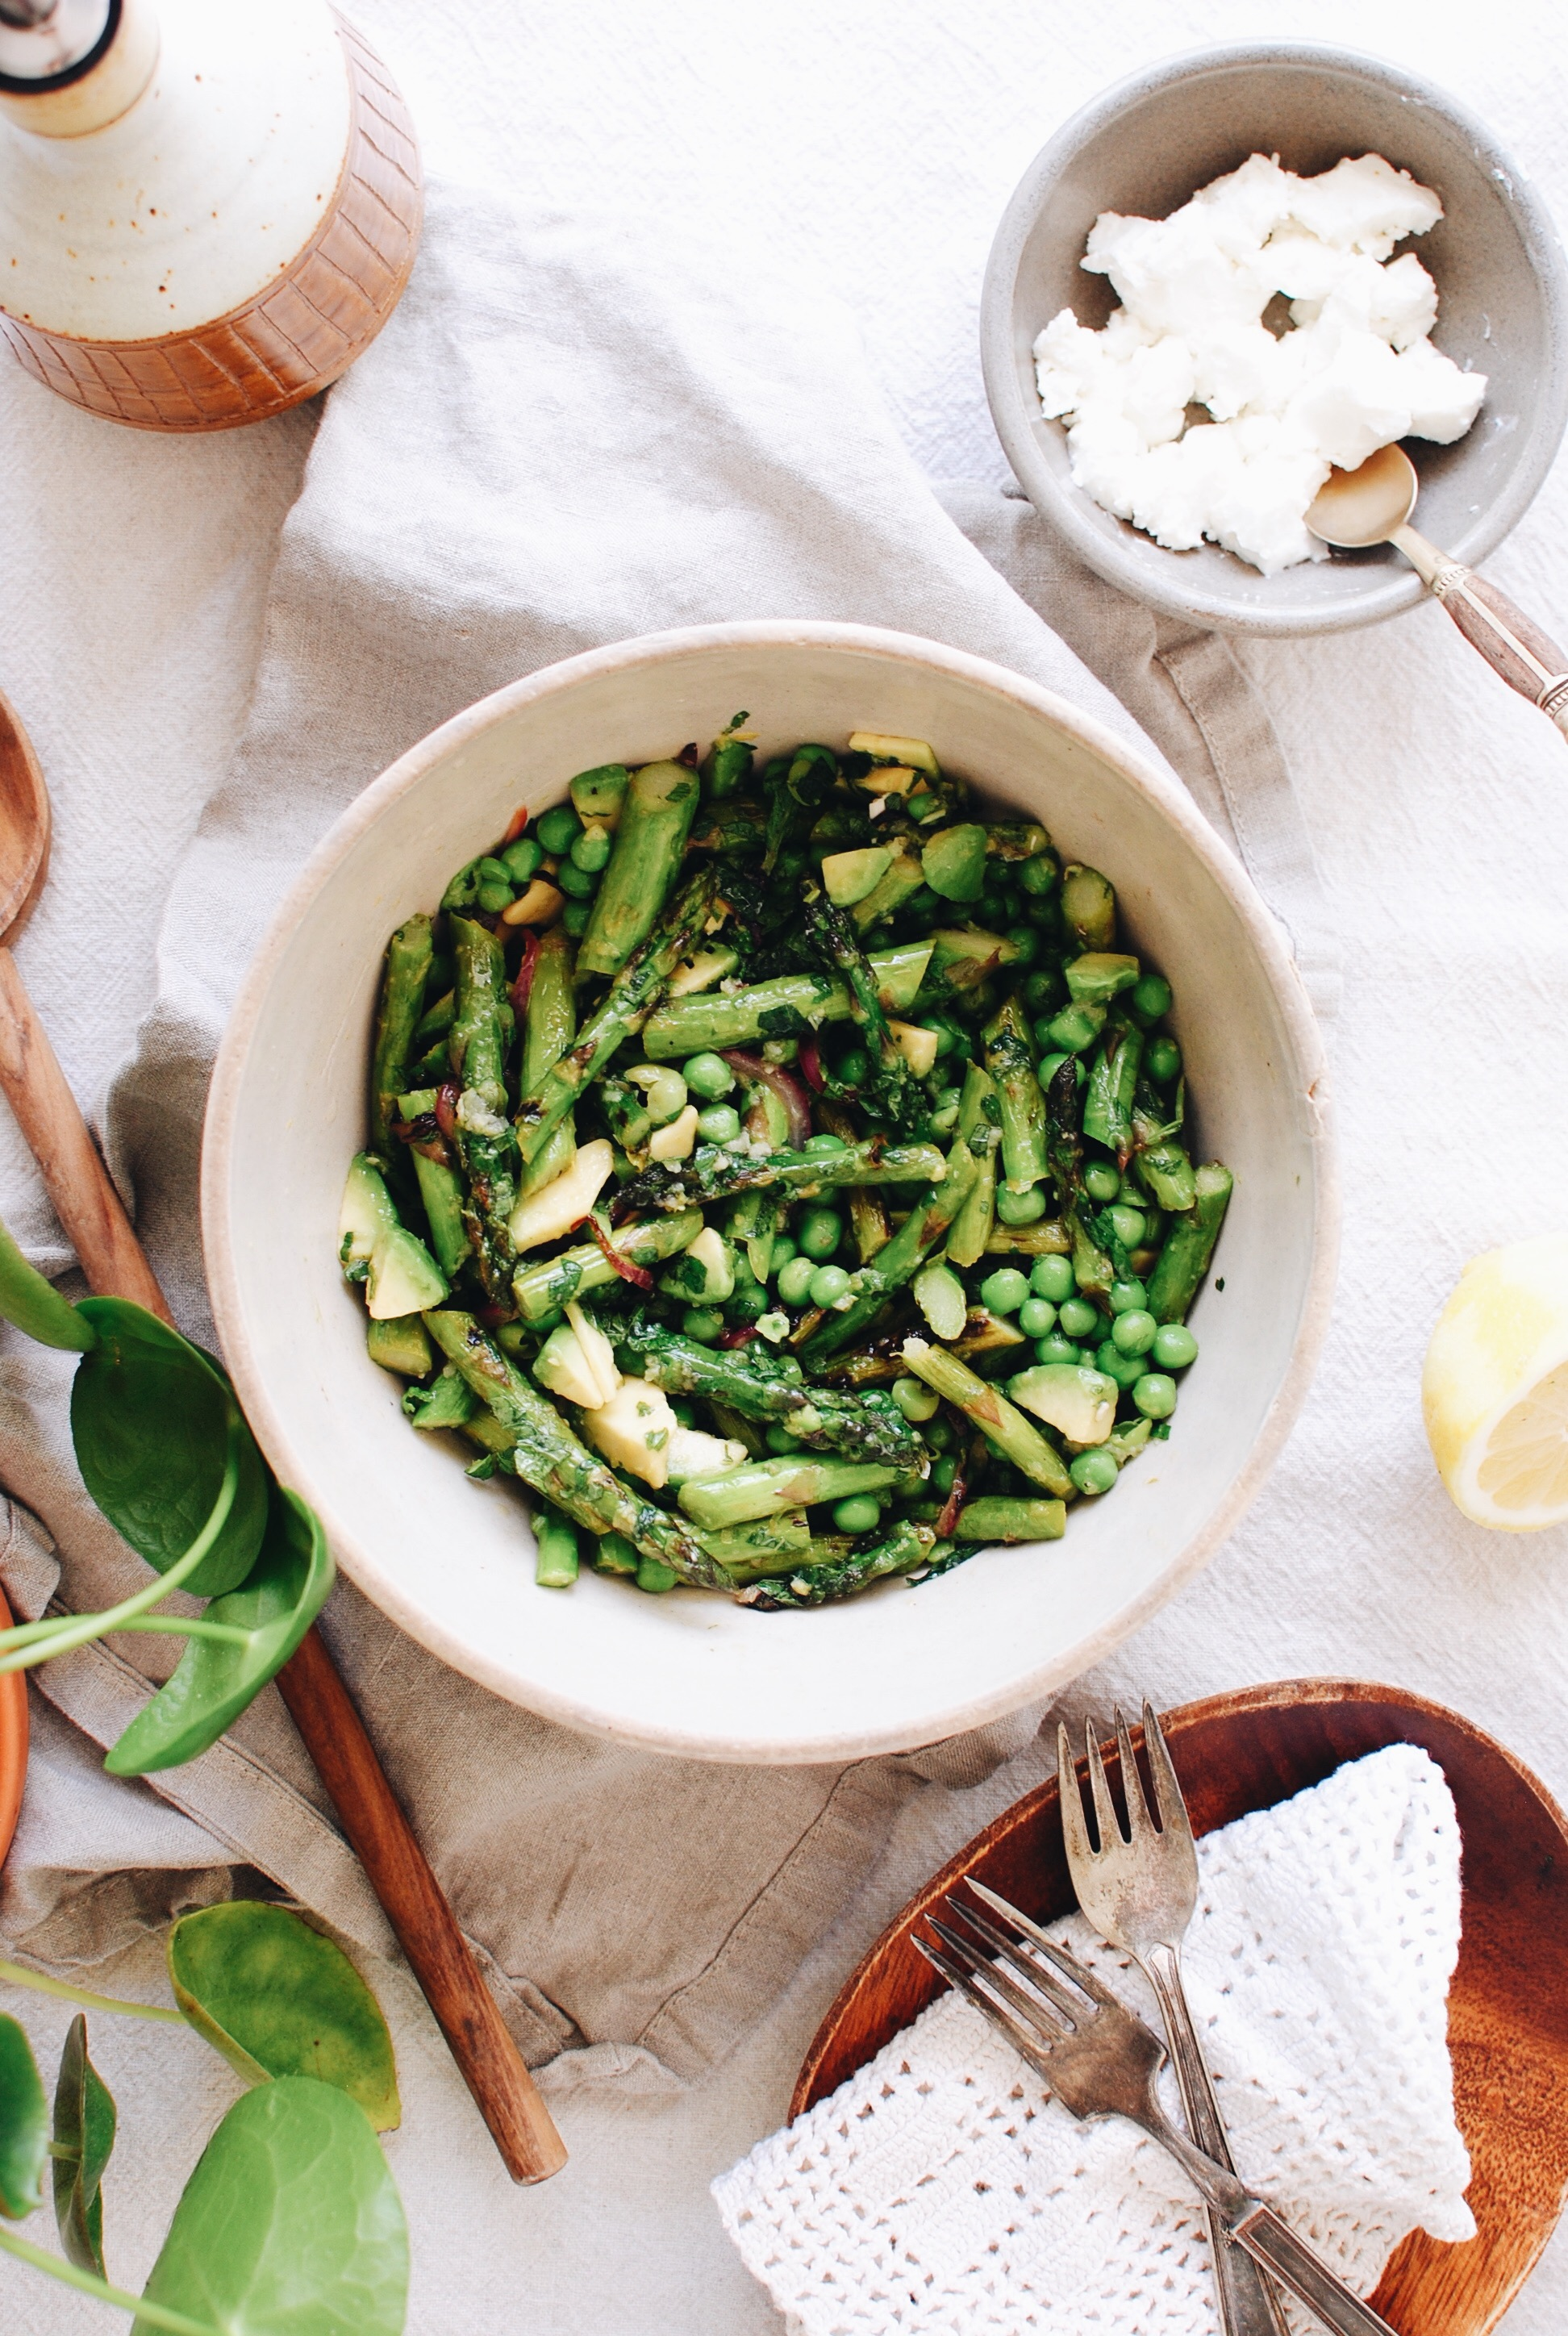 Grilled Asparagus Salad with Peas and Mint / Bev Cooks